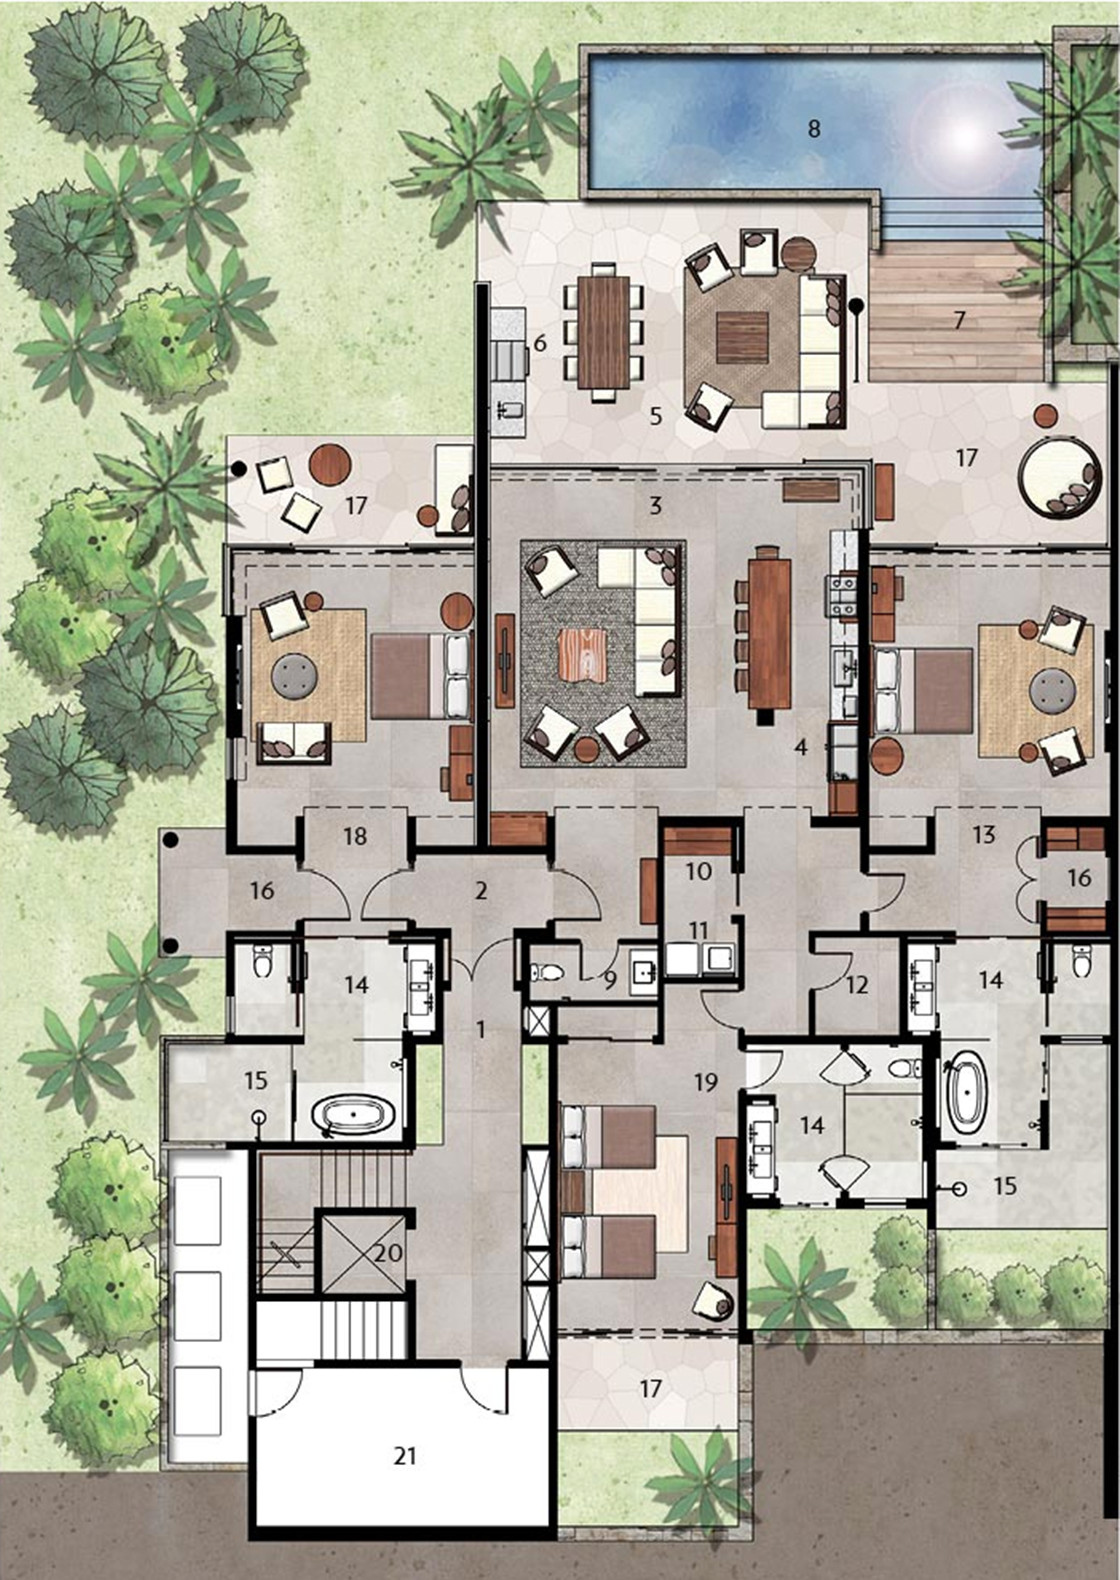 Luxury villas floor plans modern house for Villa architecture design plans